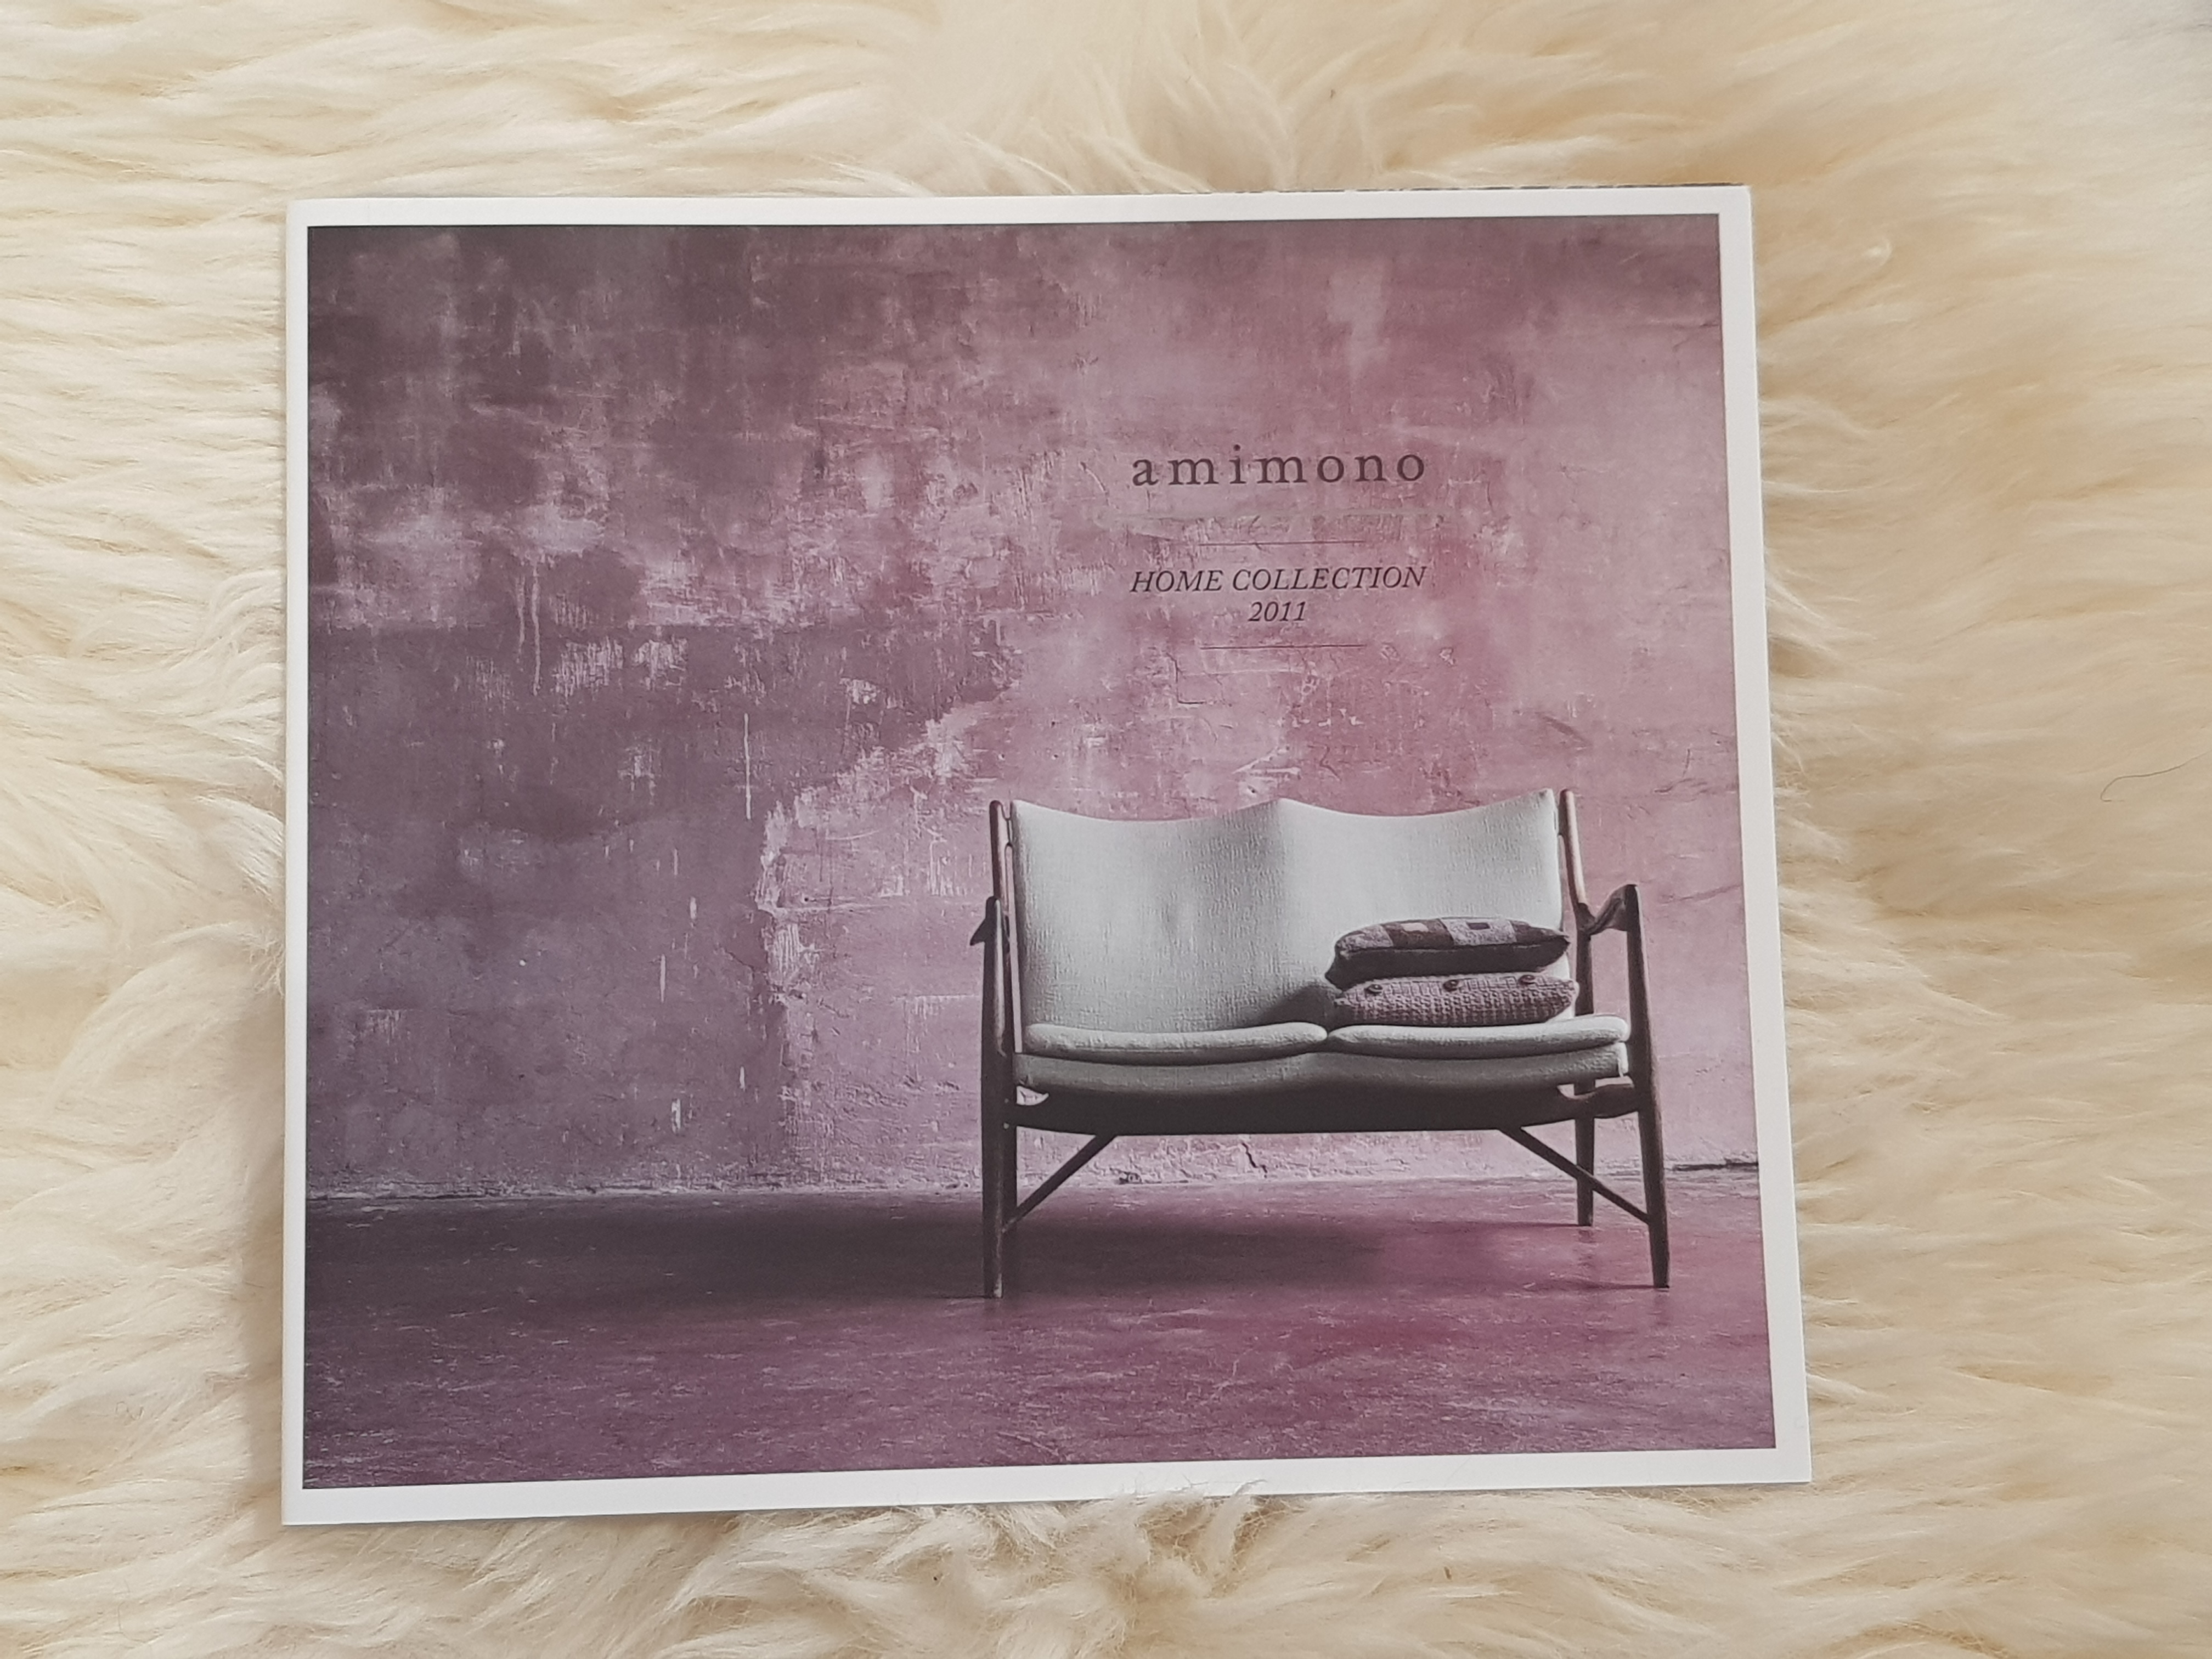 Amimono - Home Collection 2011 (Helga Isager)